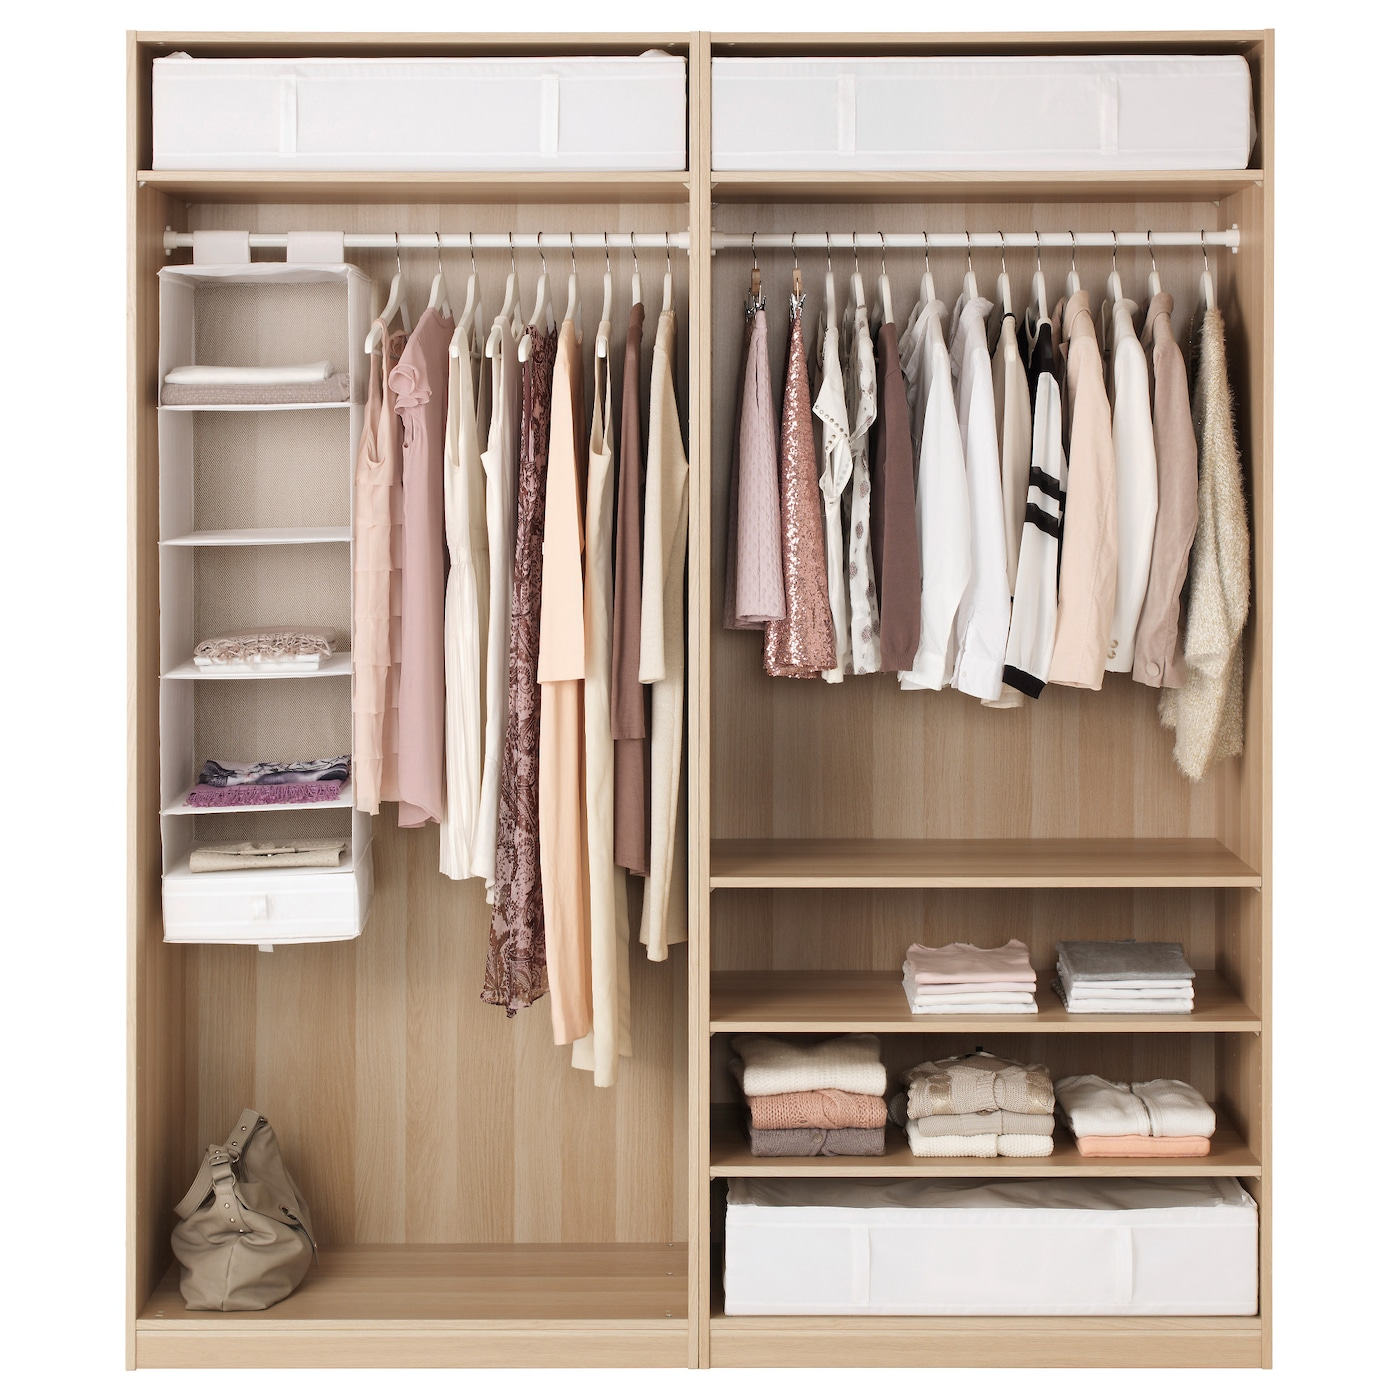 pax wardrobe white stained oak effect ilseng white stained oak veneer 200x66x236 cm ikea. Black Bedroom Furniture Sets. Home Design Ideas